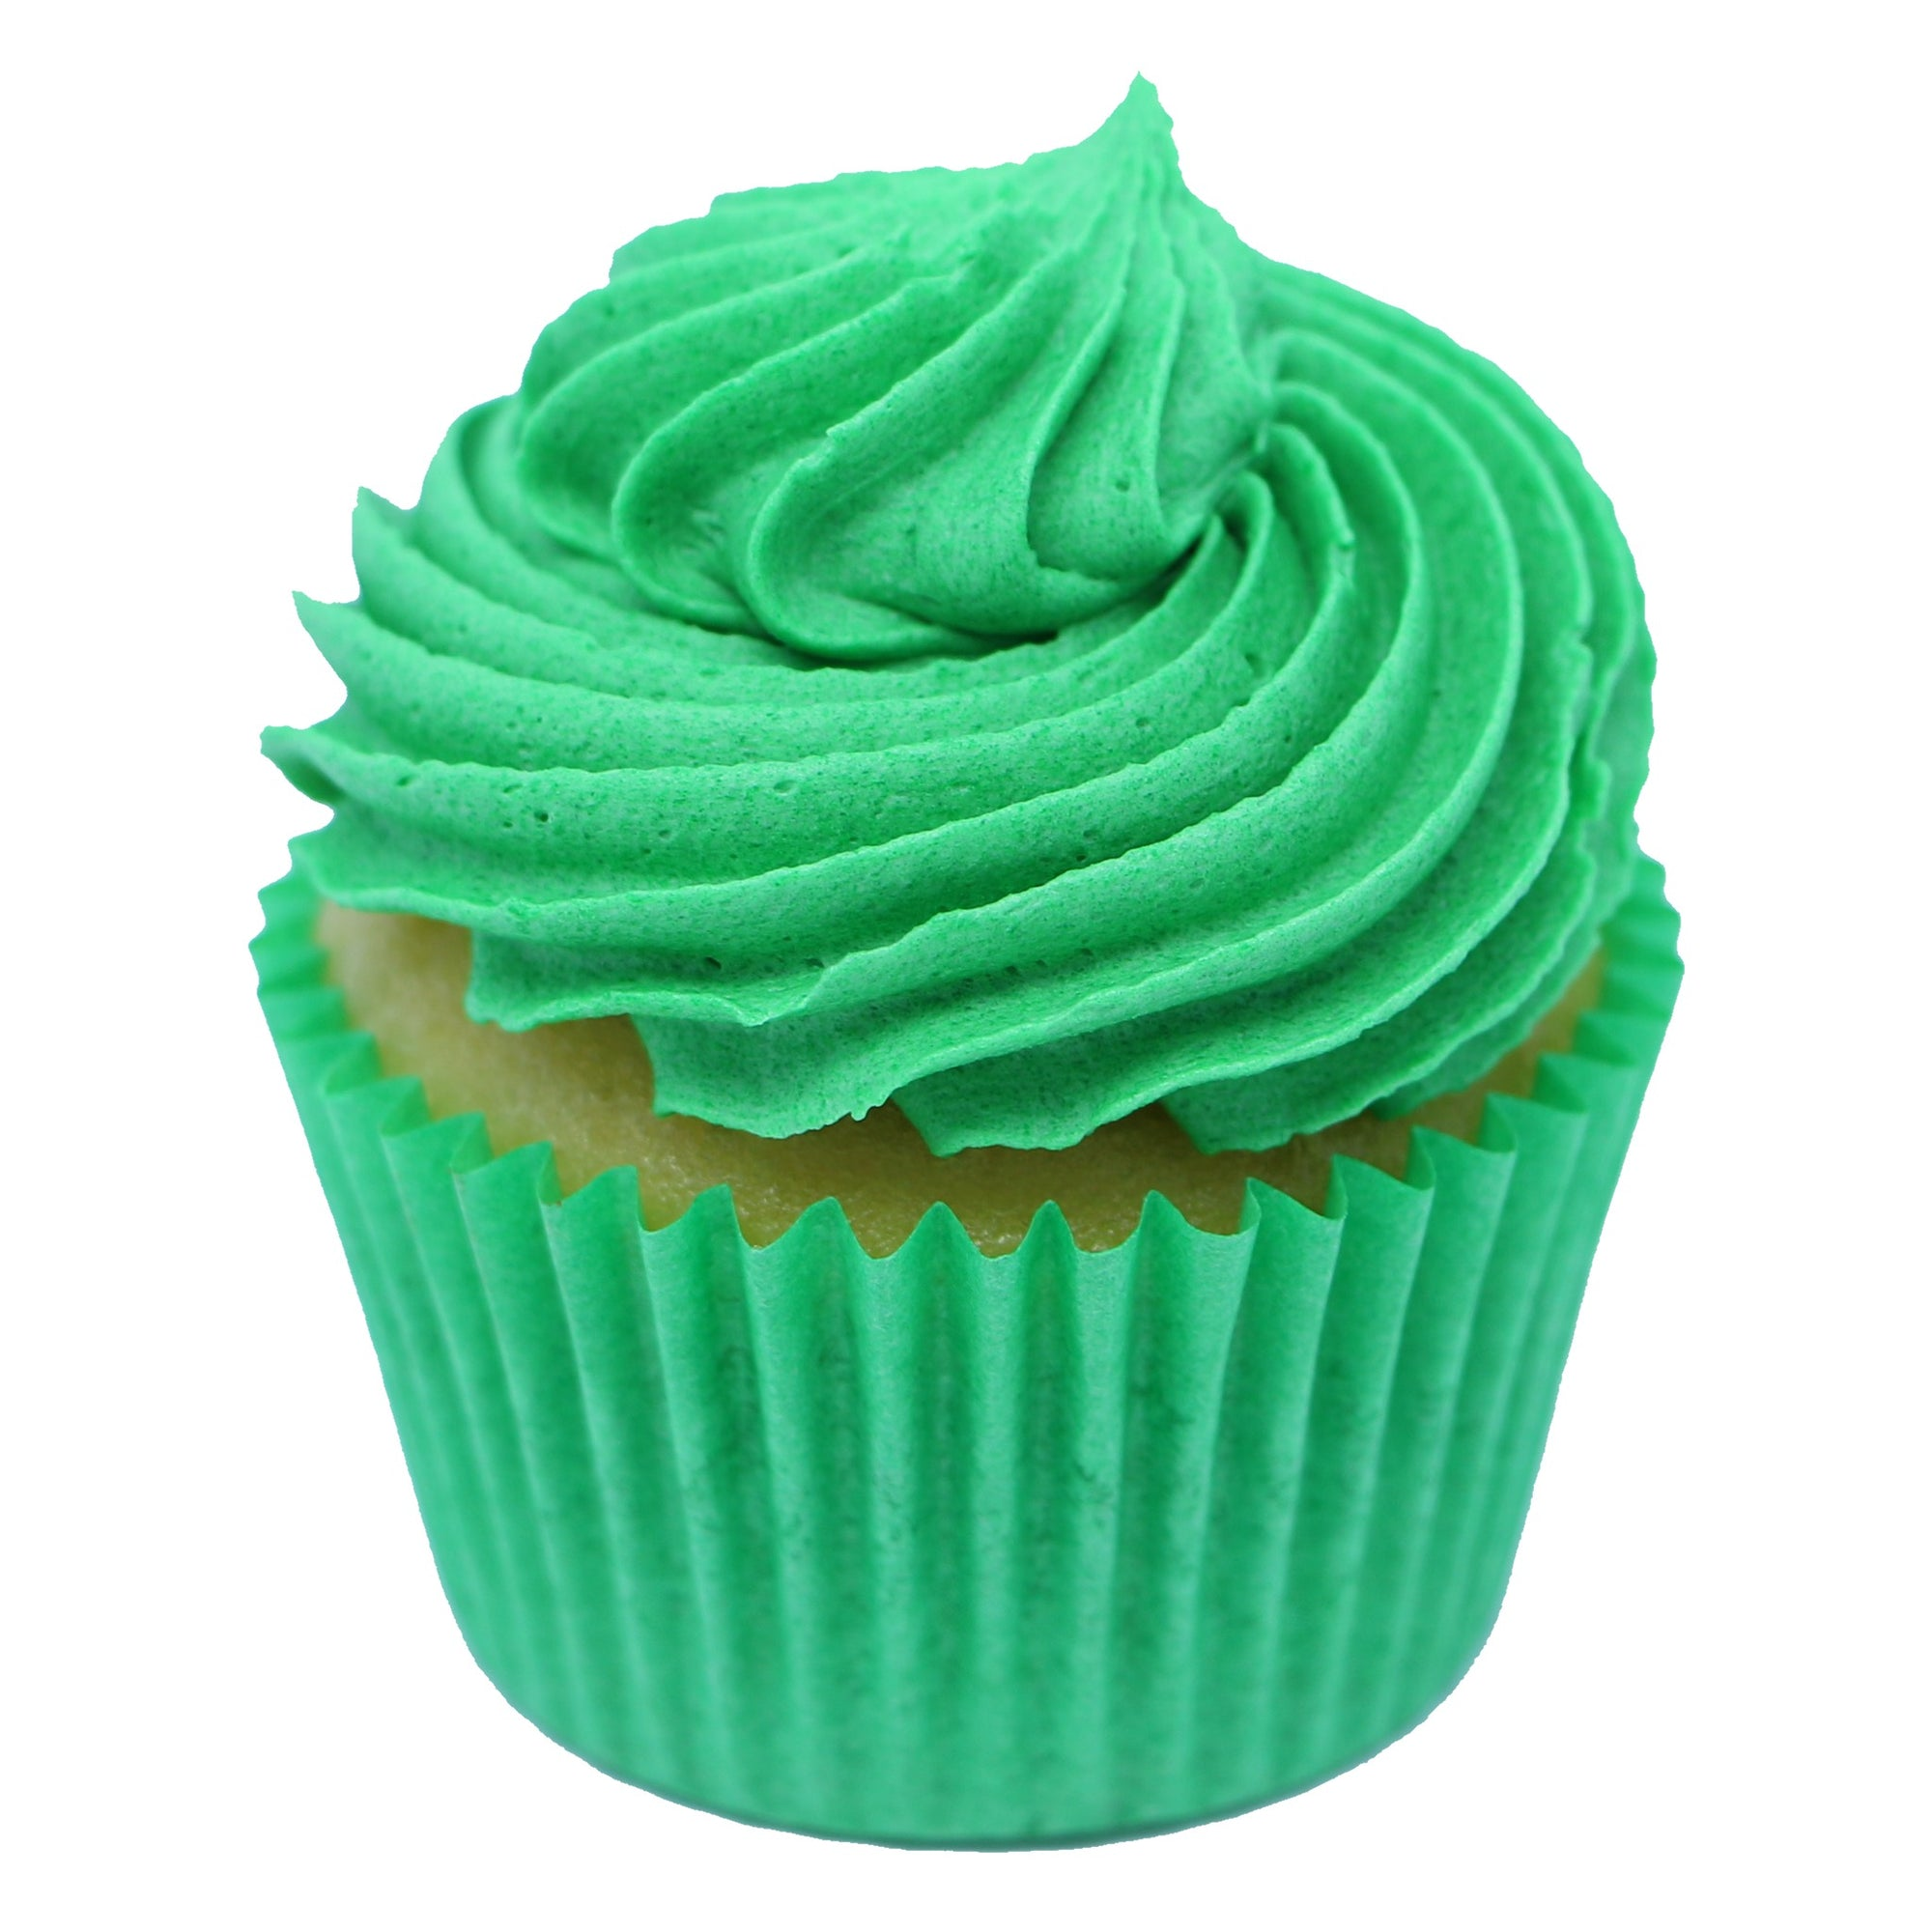 Mini Cupcake - Green - Treats2eat - Wedding & Birthday Party Dessert Catering Near Me